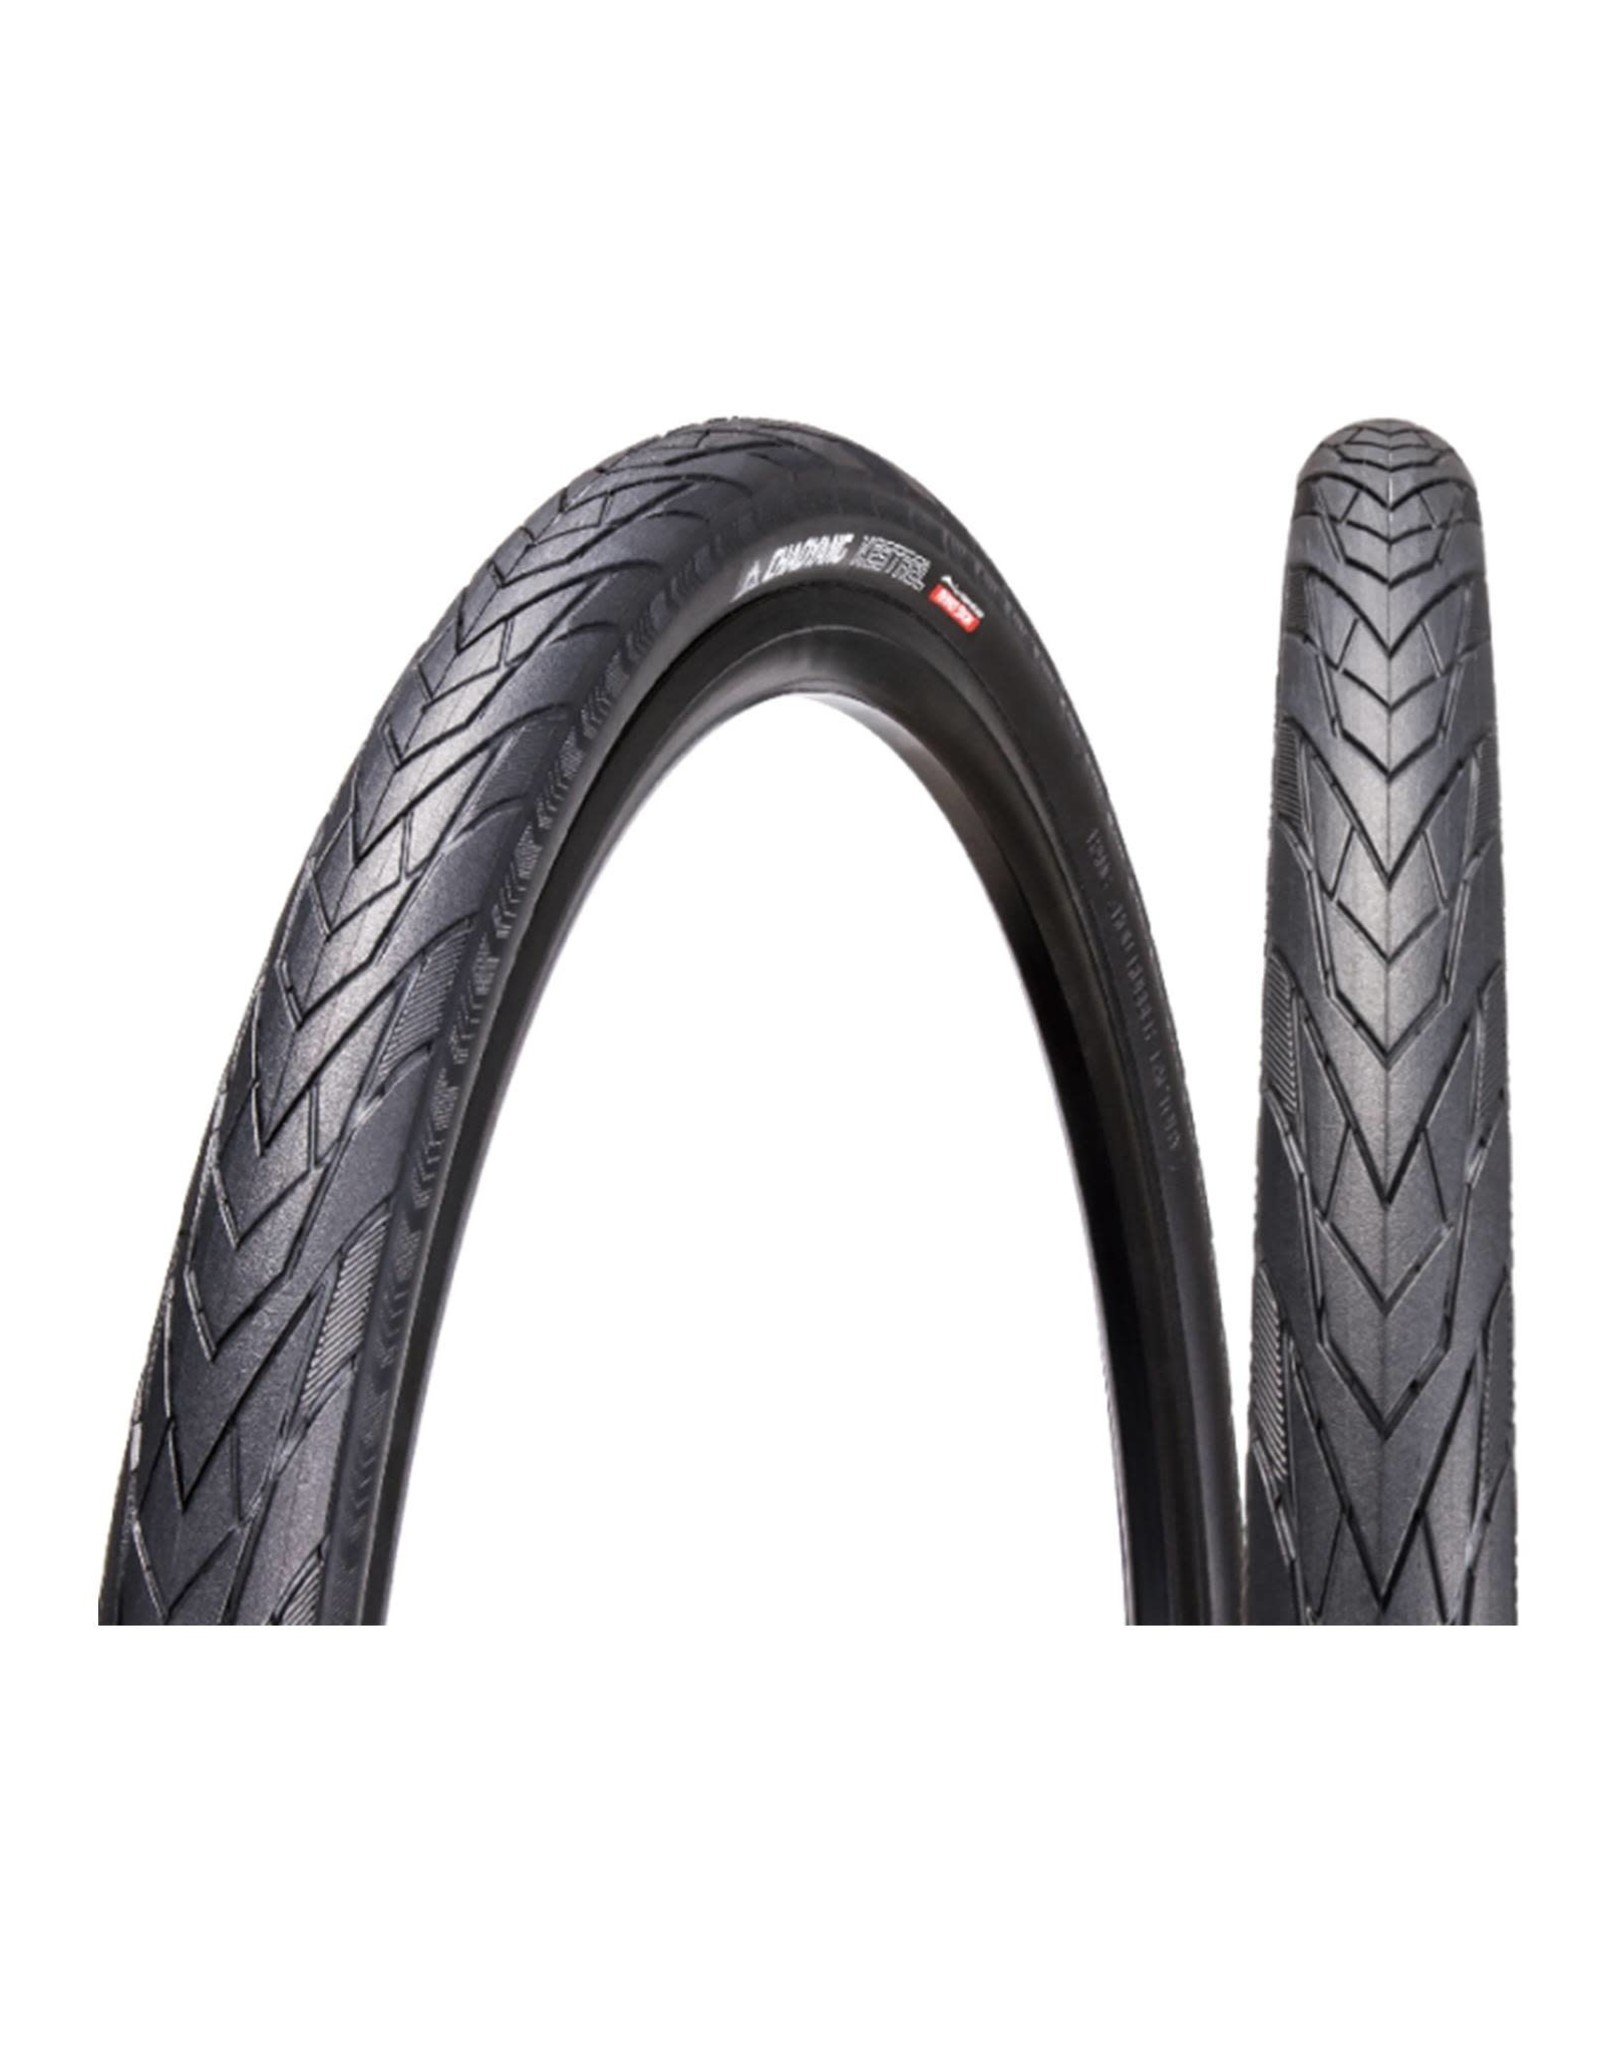 Chaoyang Kestrel Speed Shark 700 x 28 5mm Tyre